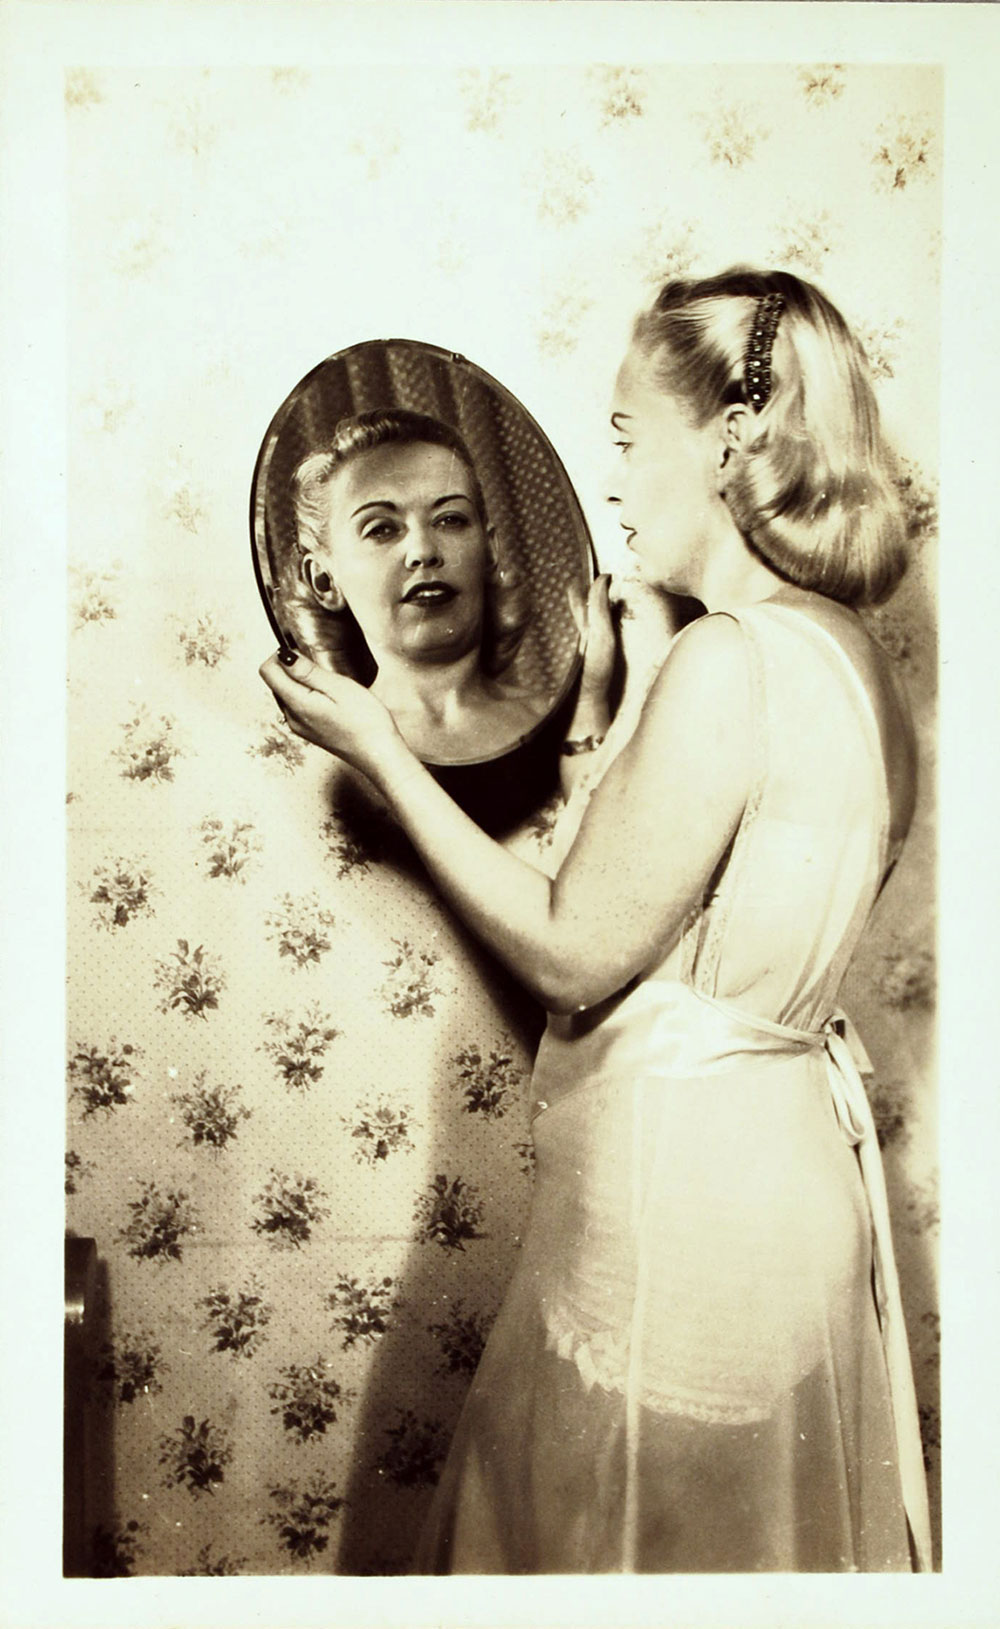 photo of a woman wearing a nightgown and looking at herself in a mirror